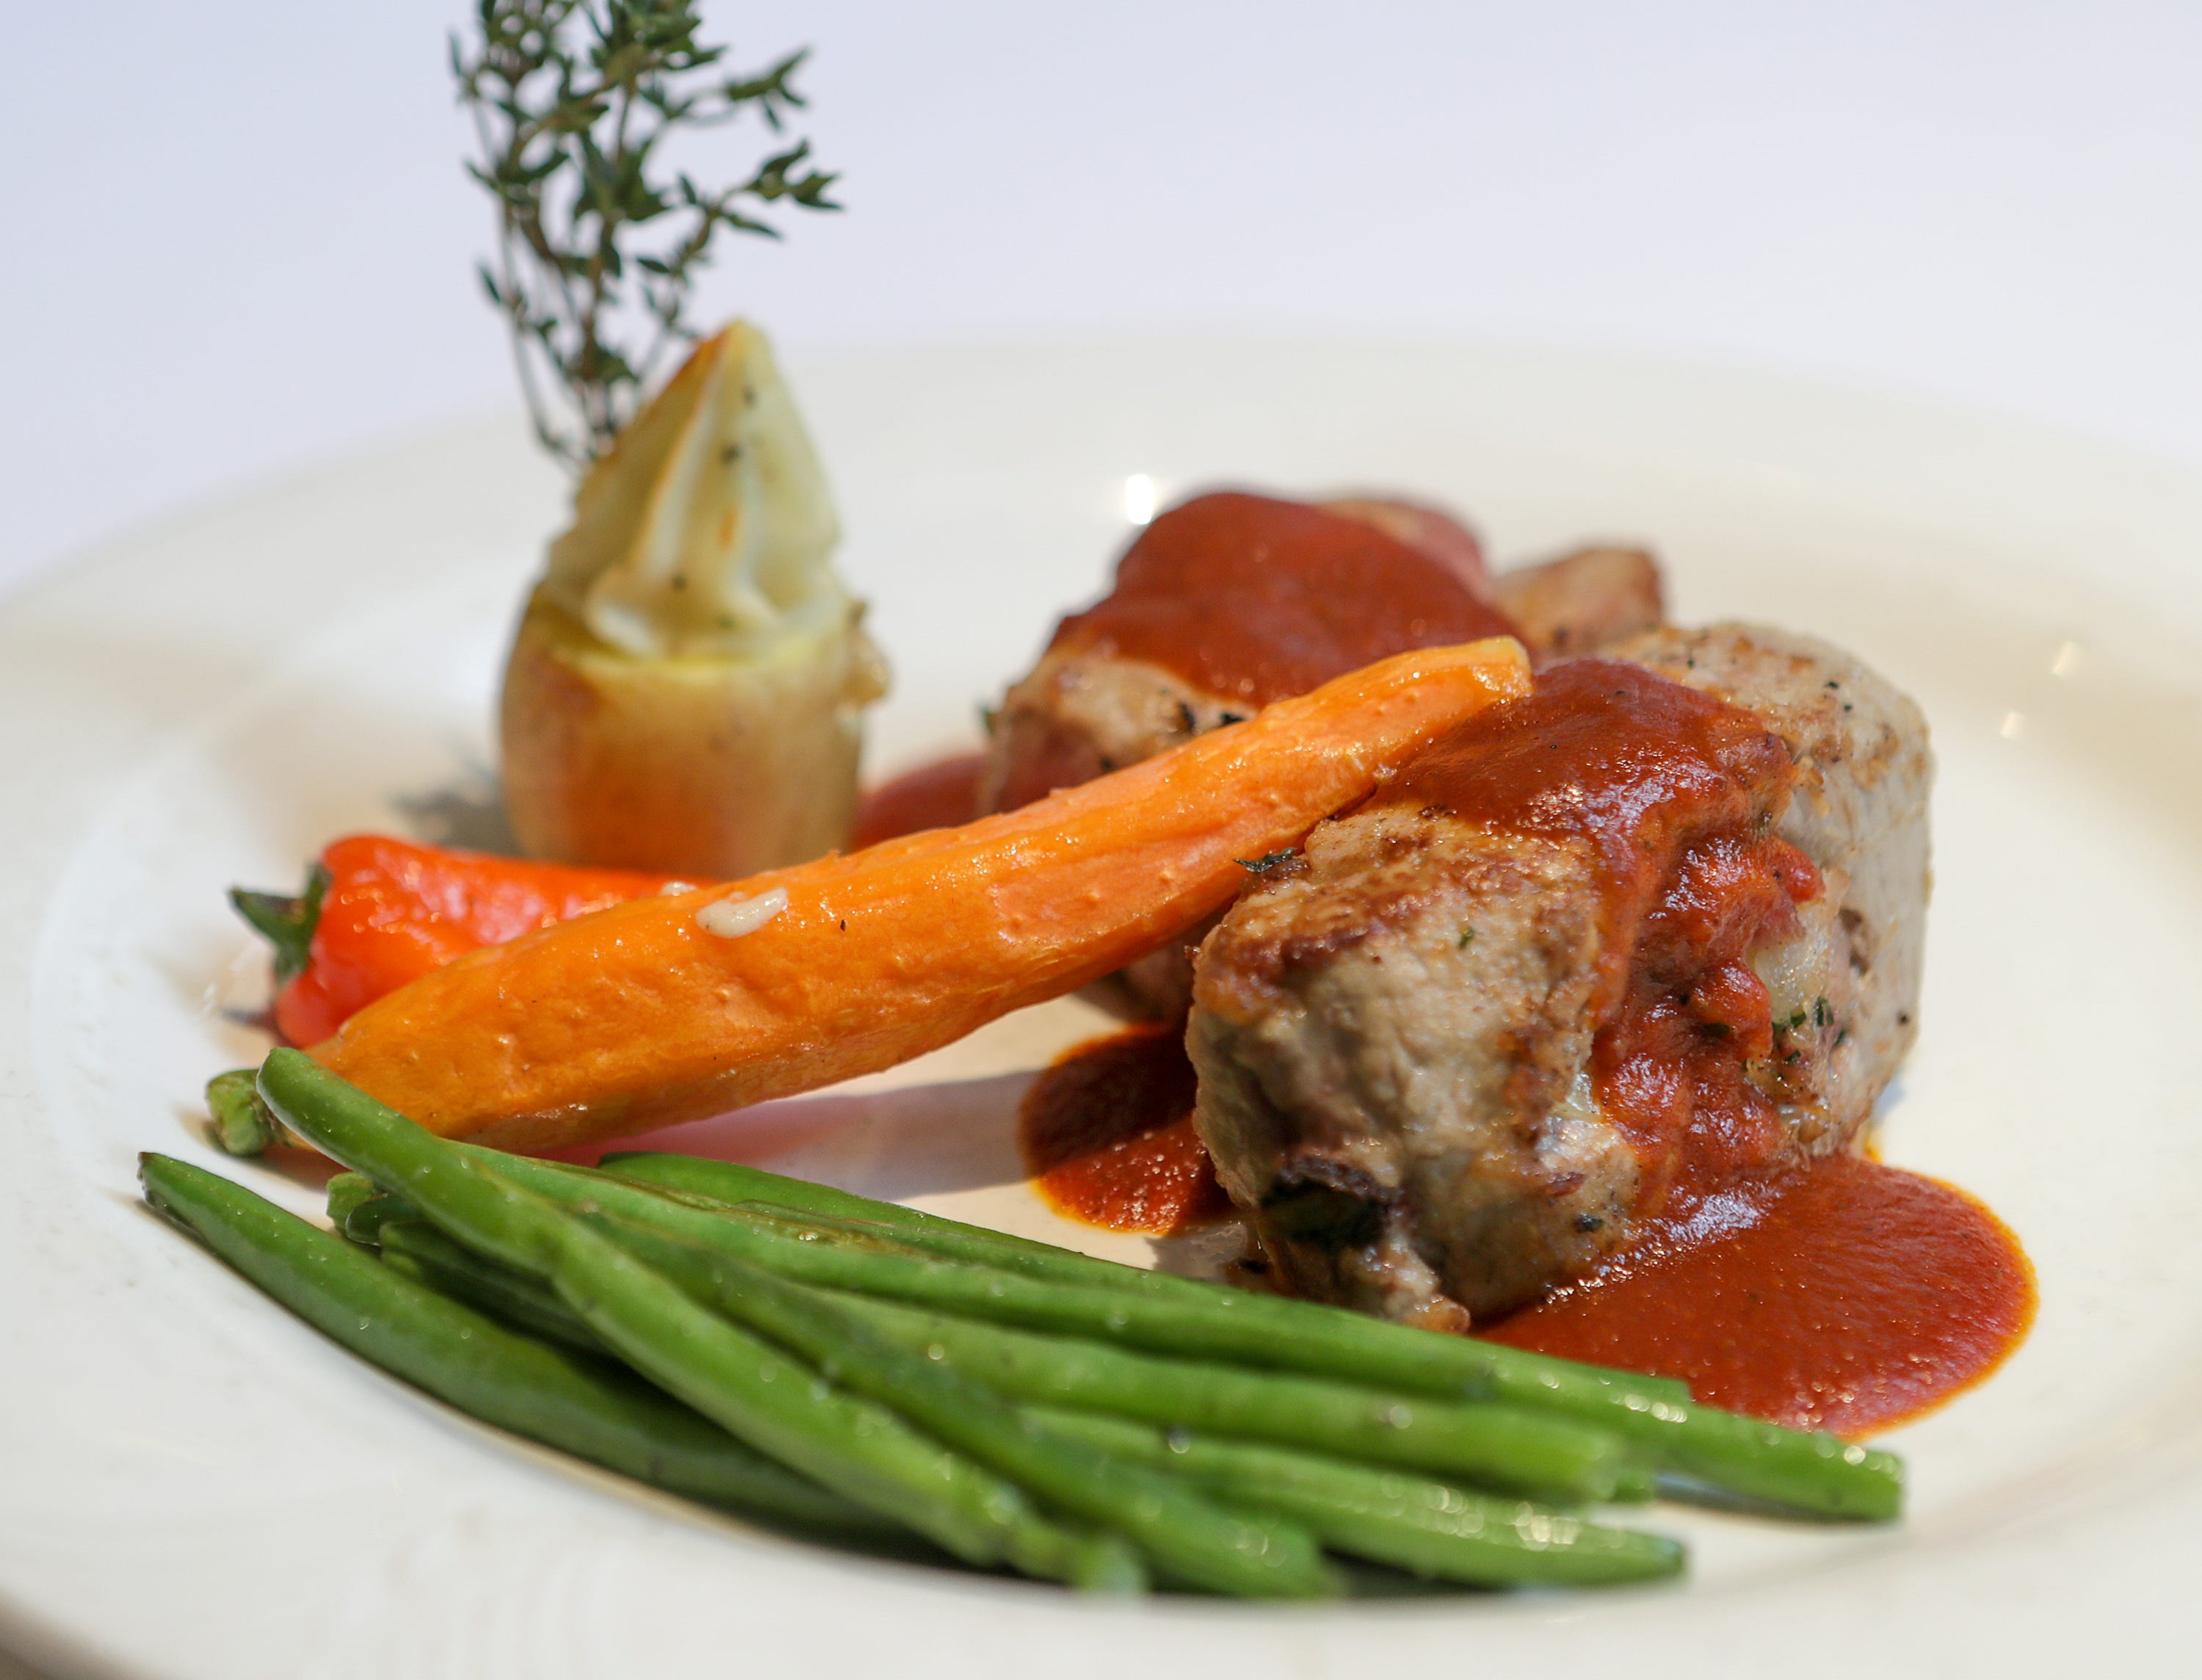 Filetto Di Vitello Al Madeira at Vincenzo'sMedallion of veal stuffed with smoked Gouda and pancetta in a Madeira wine sauce.December 19, 2018